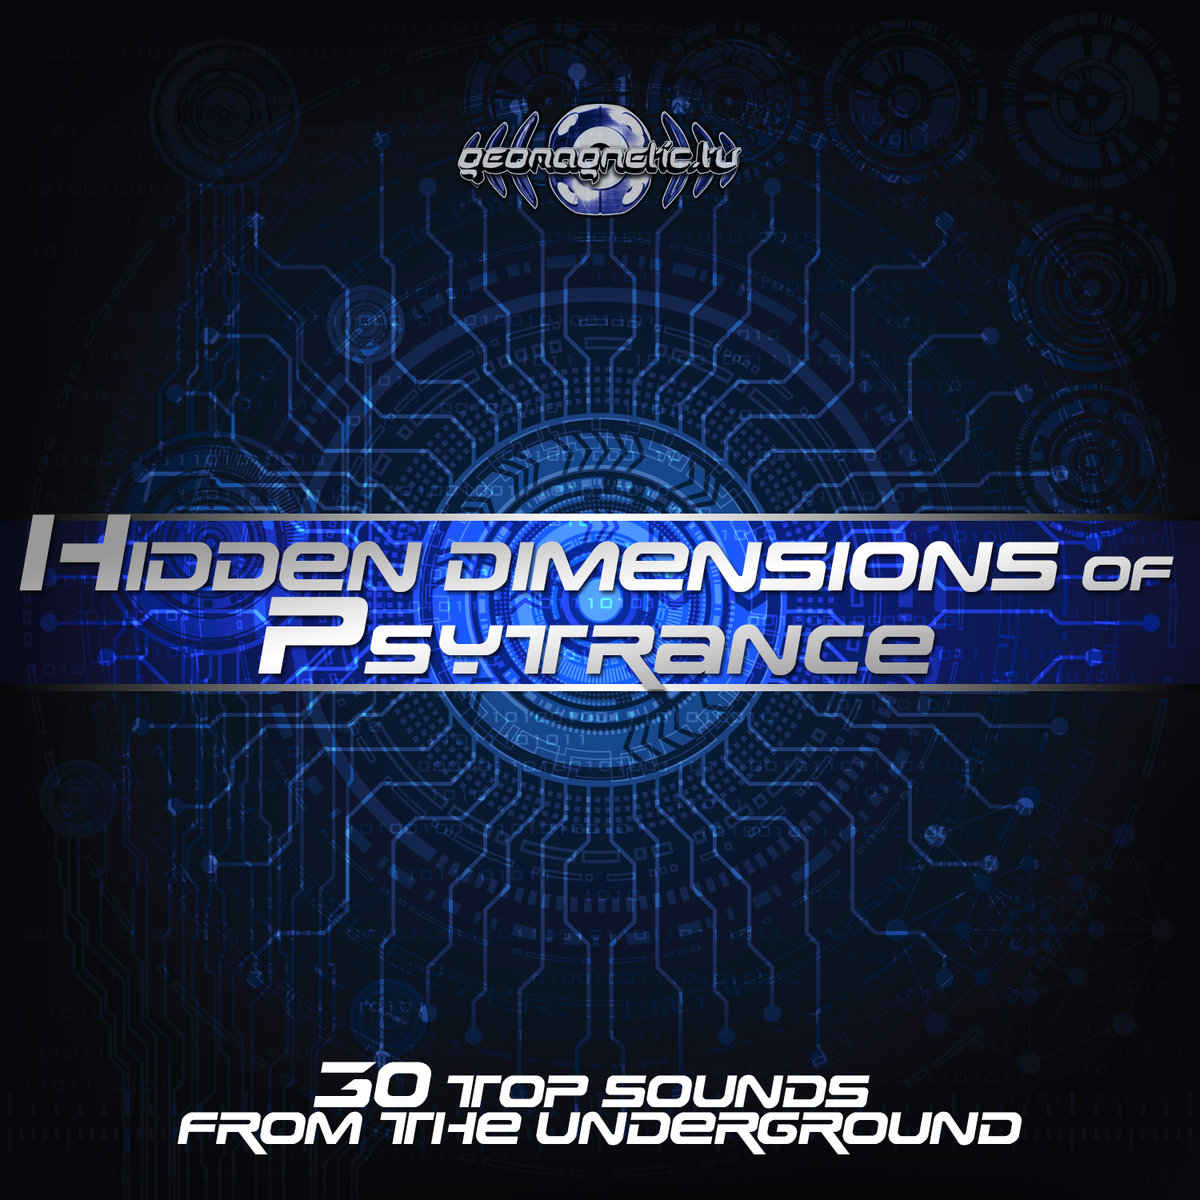 Psypien - Panmanic @ 'Various Artists - Hidden Dimensions of Psytrance (30 Top Sounds From The Underground)' album (electronic, goa)